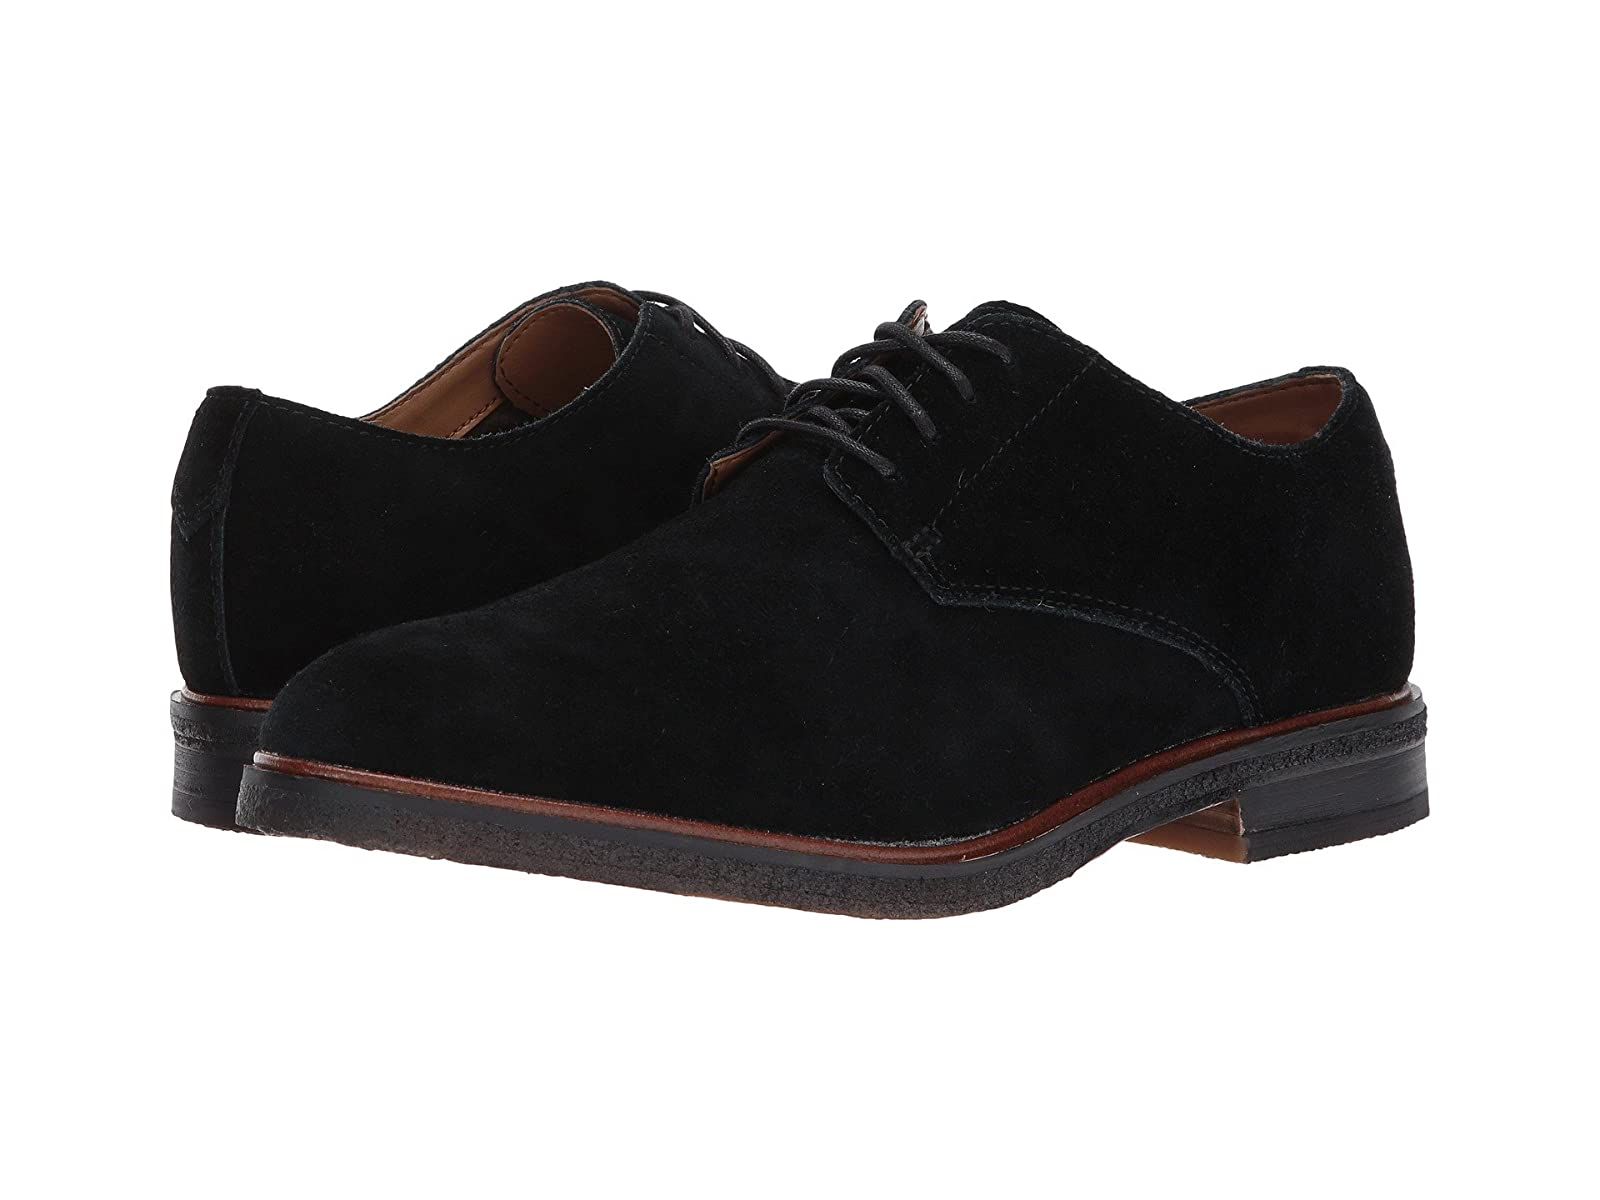 Clarks Clarkdale MoonCheap and distinctive eye-catching shoes